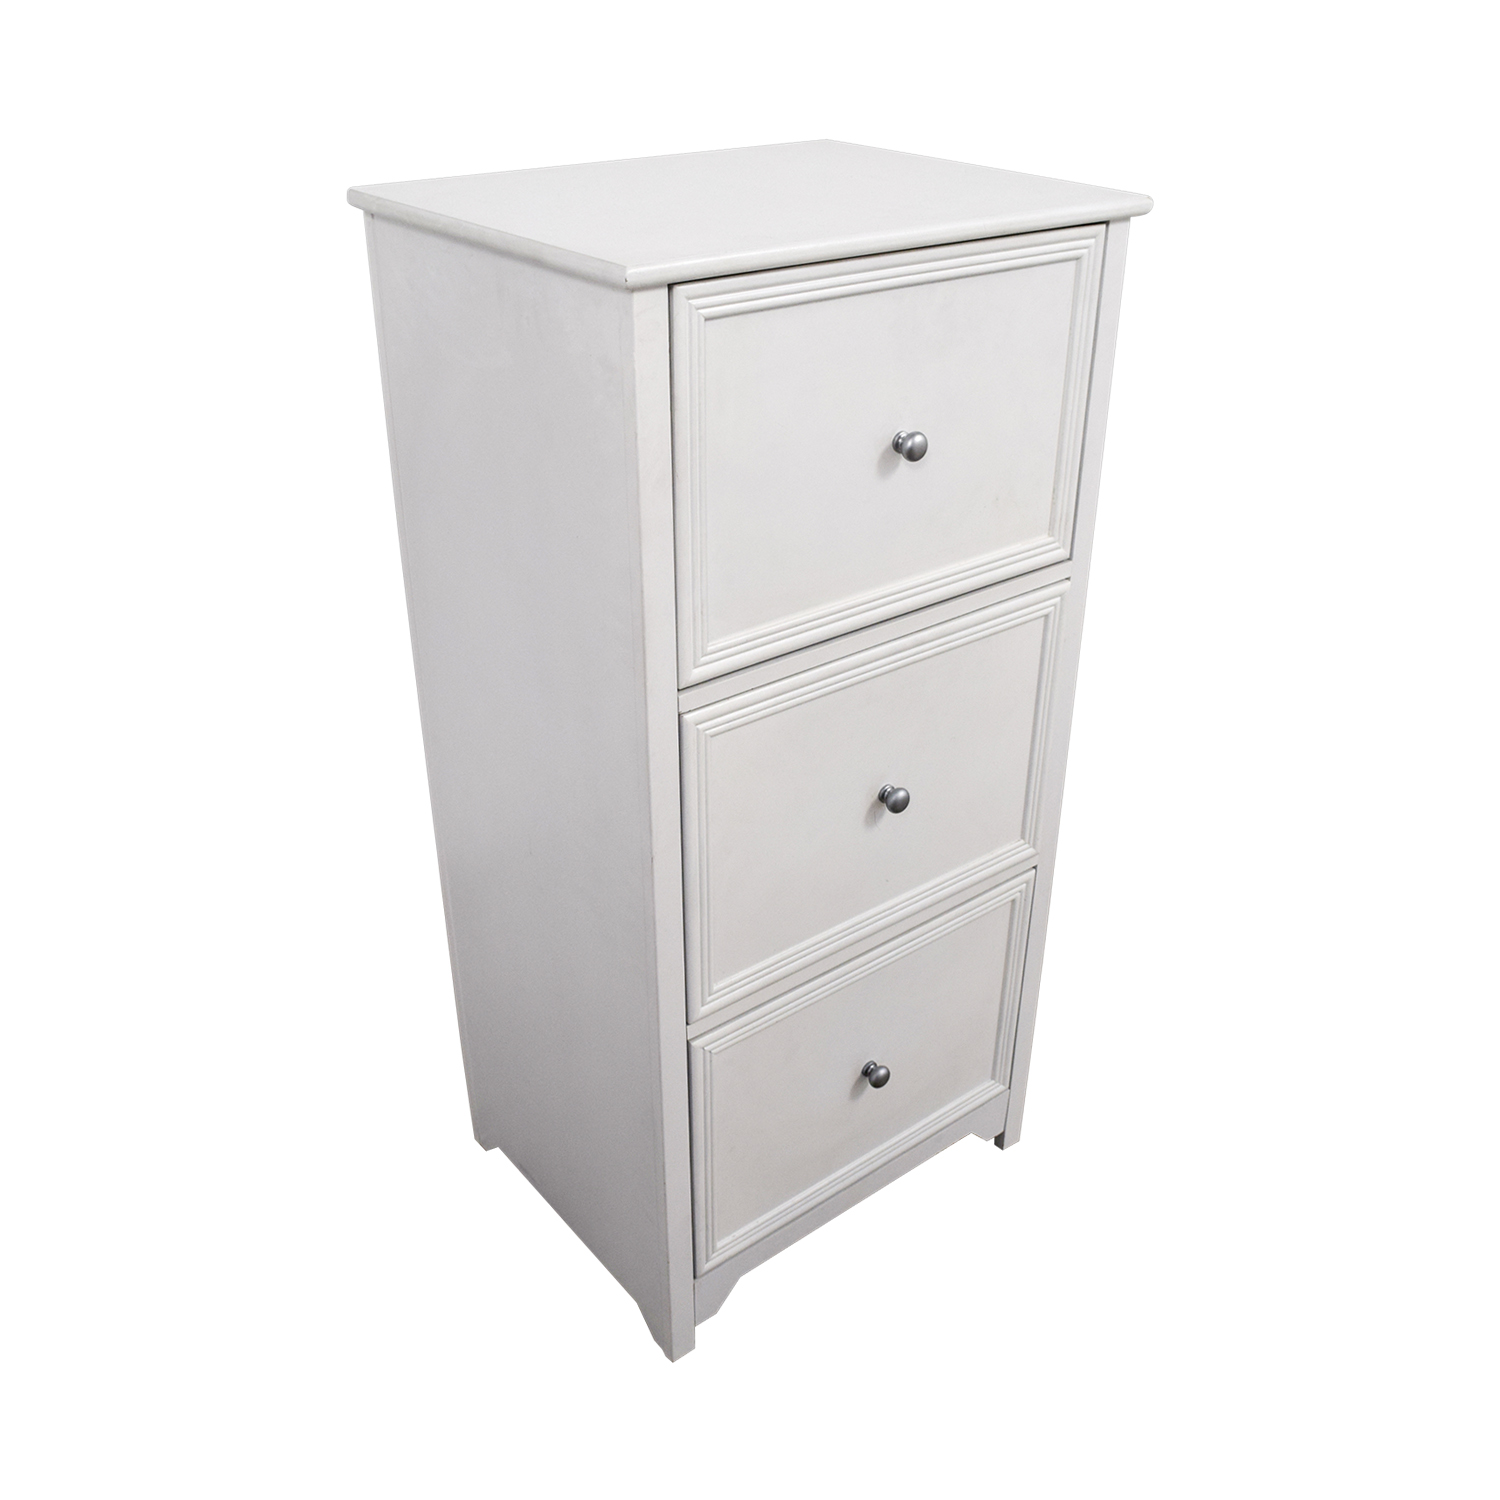 White Three-Drawer Filing Cabinet dimensions